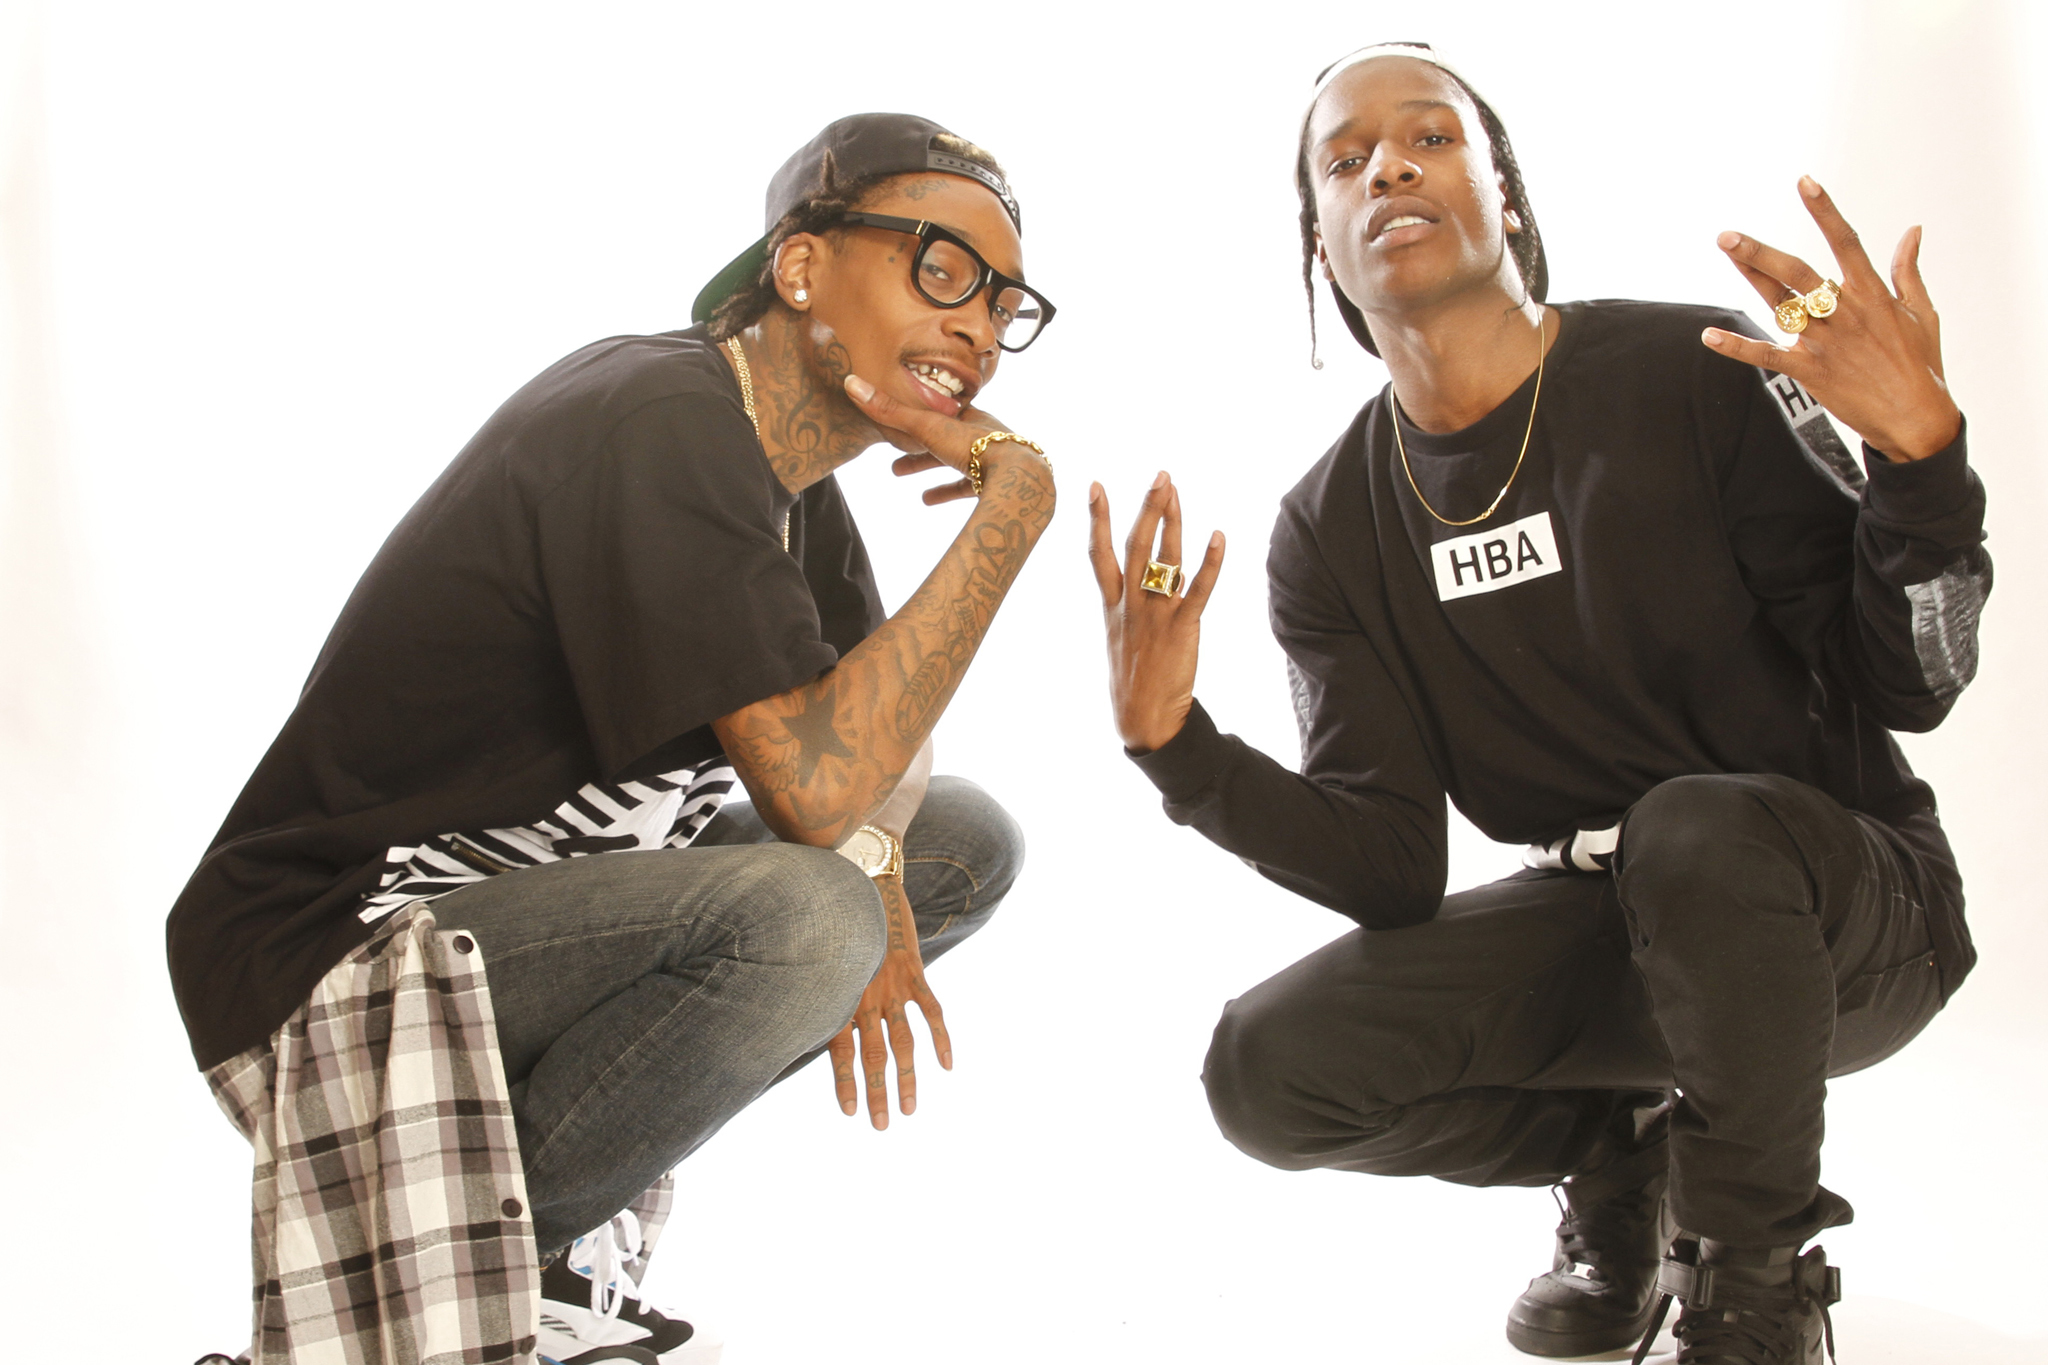 On sale this week: A$AP Rocky and Wiz Khalifa, Lianne La Havas, Gregory Porter and more